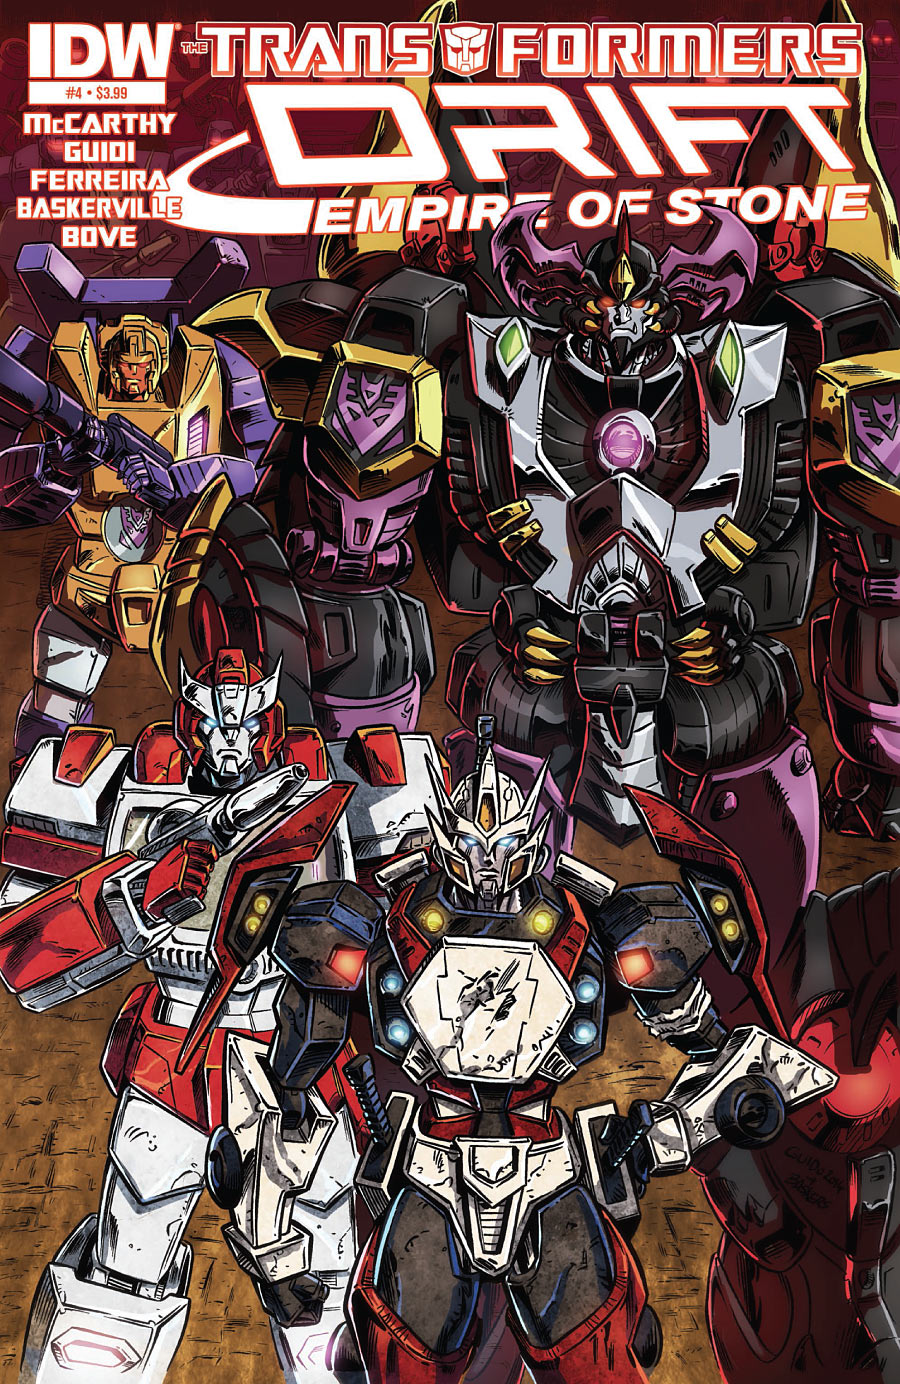 The Transformers: Drift - Empire of Stone #4